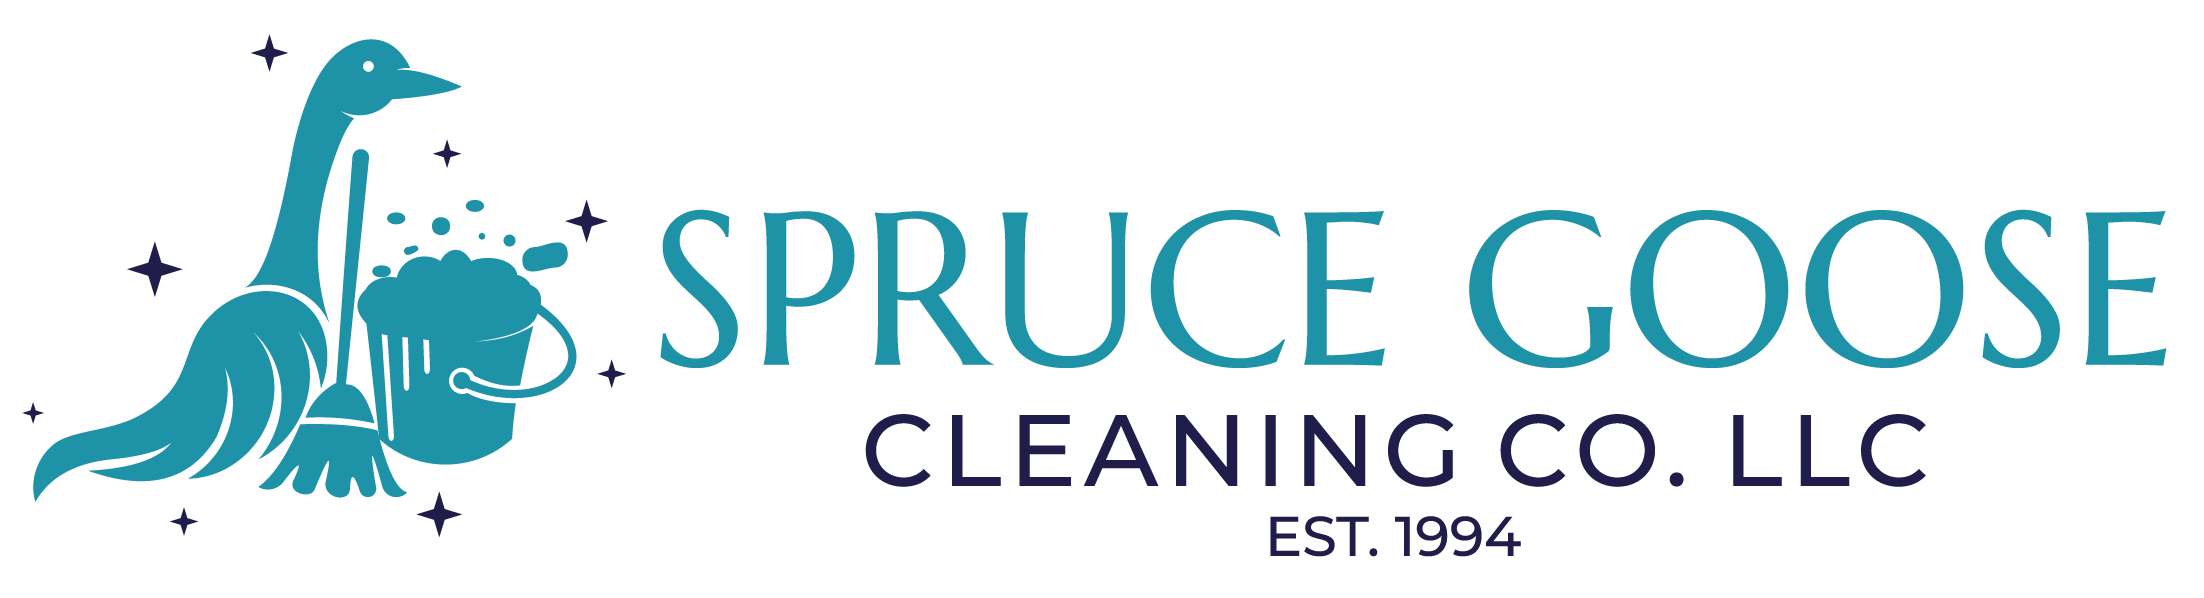 SPRUCE GOOSE CLEANING CO. LLC (1)